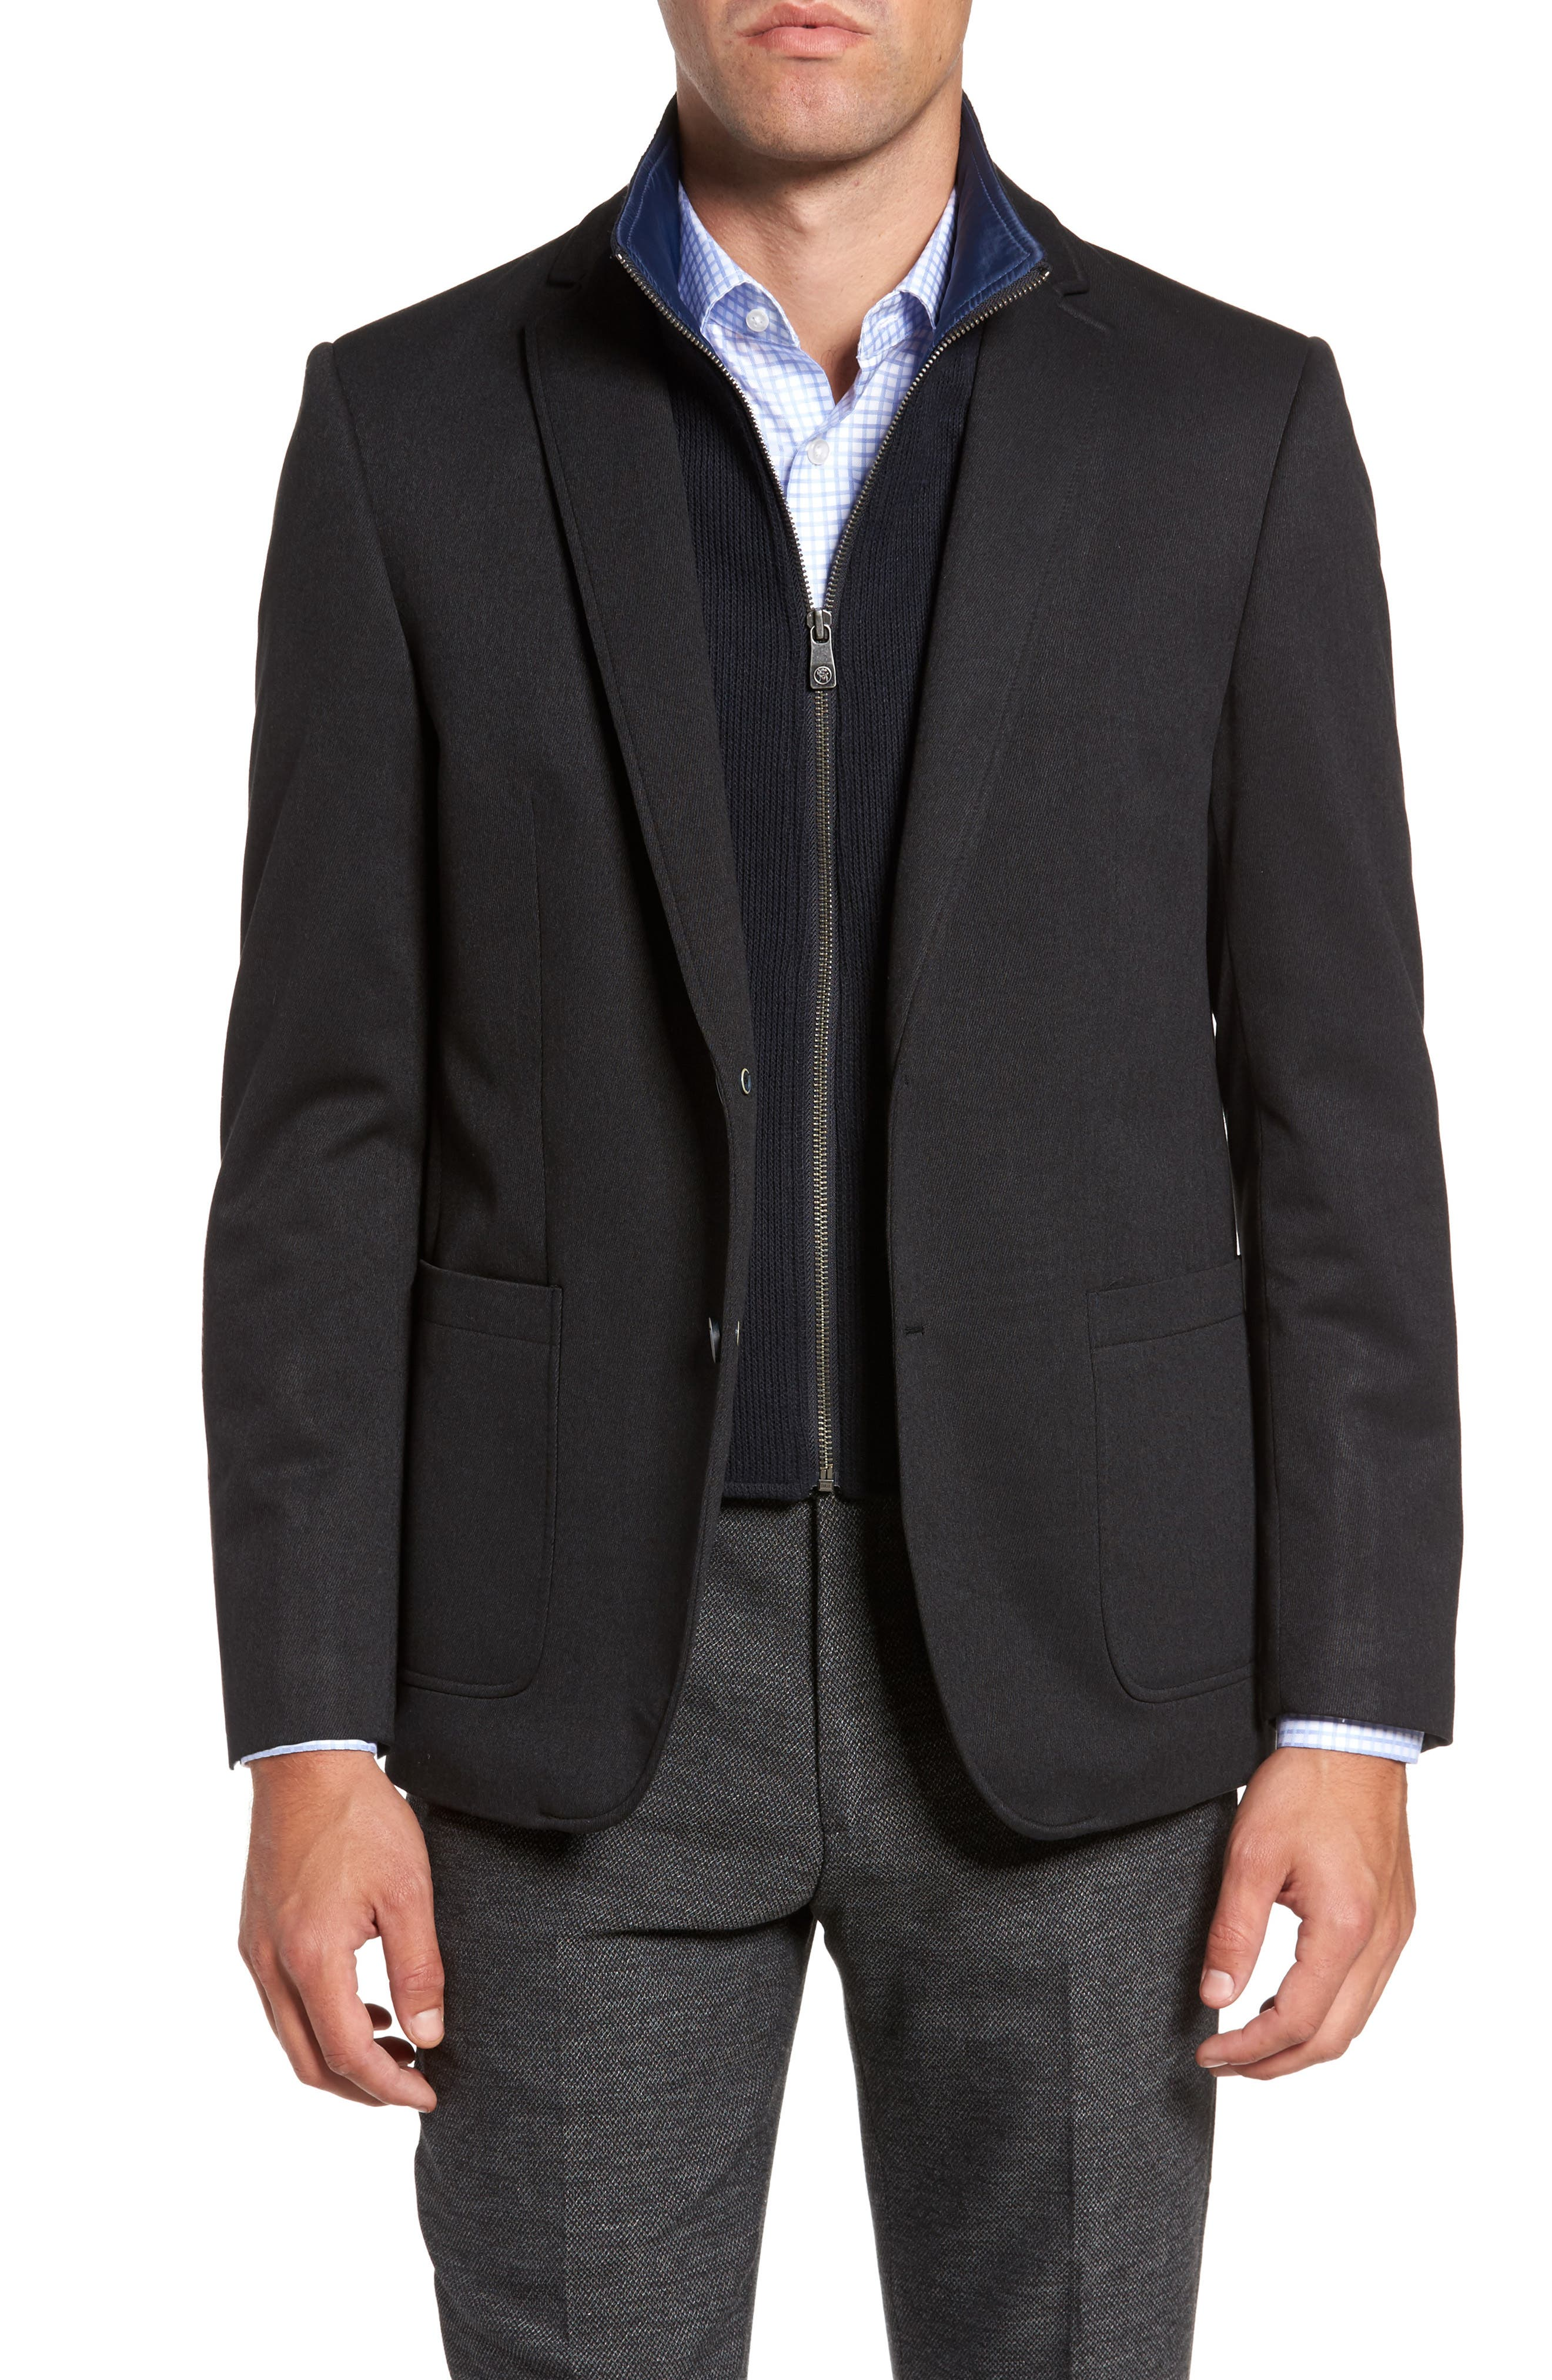 Broderick Technical Outerwear Jacket with Detachable Knit Bib,                         Main,                         color, Navy